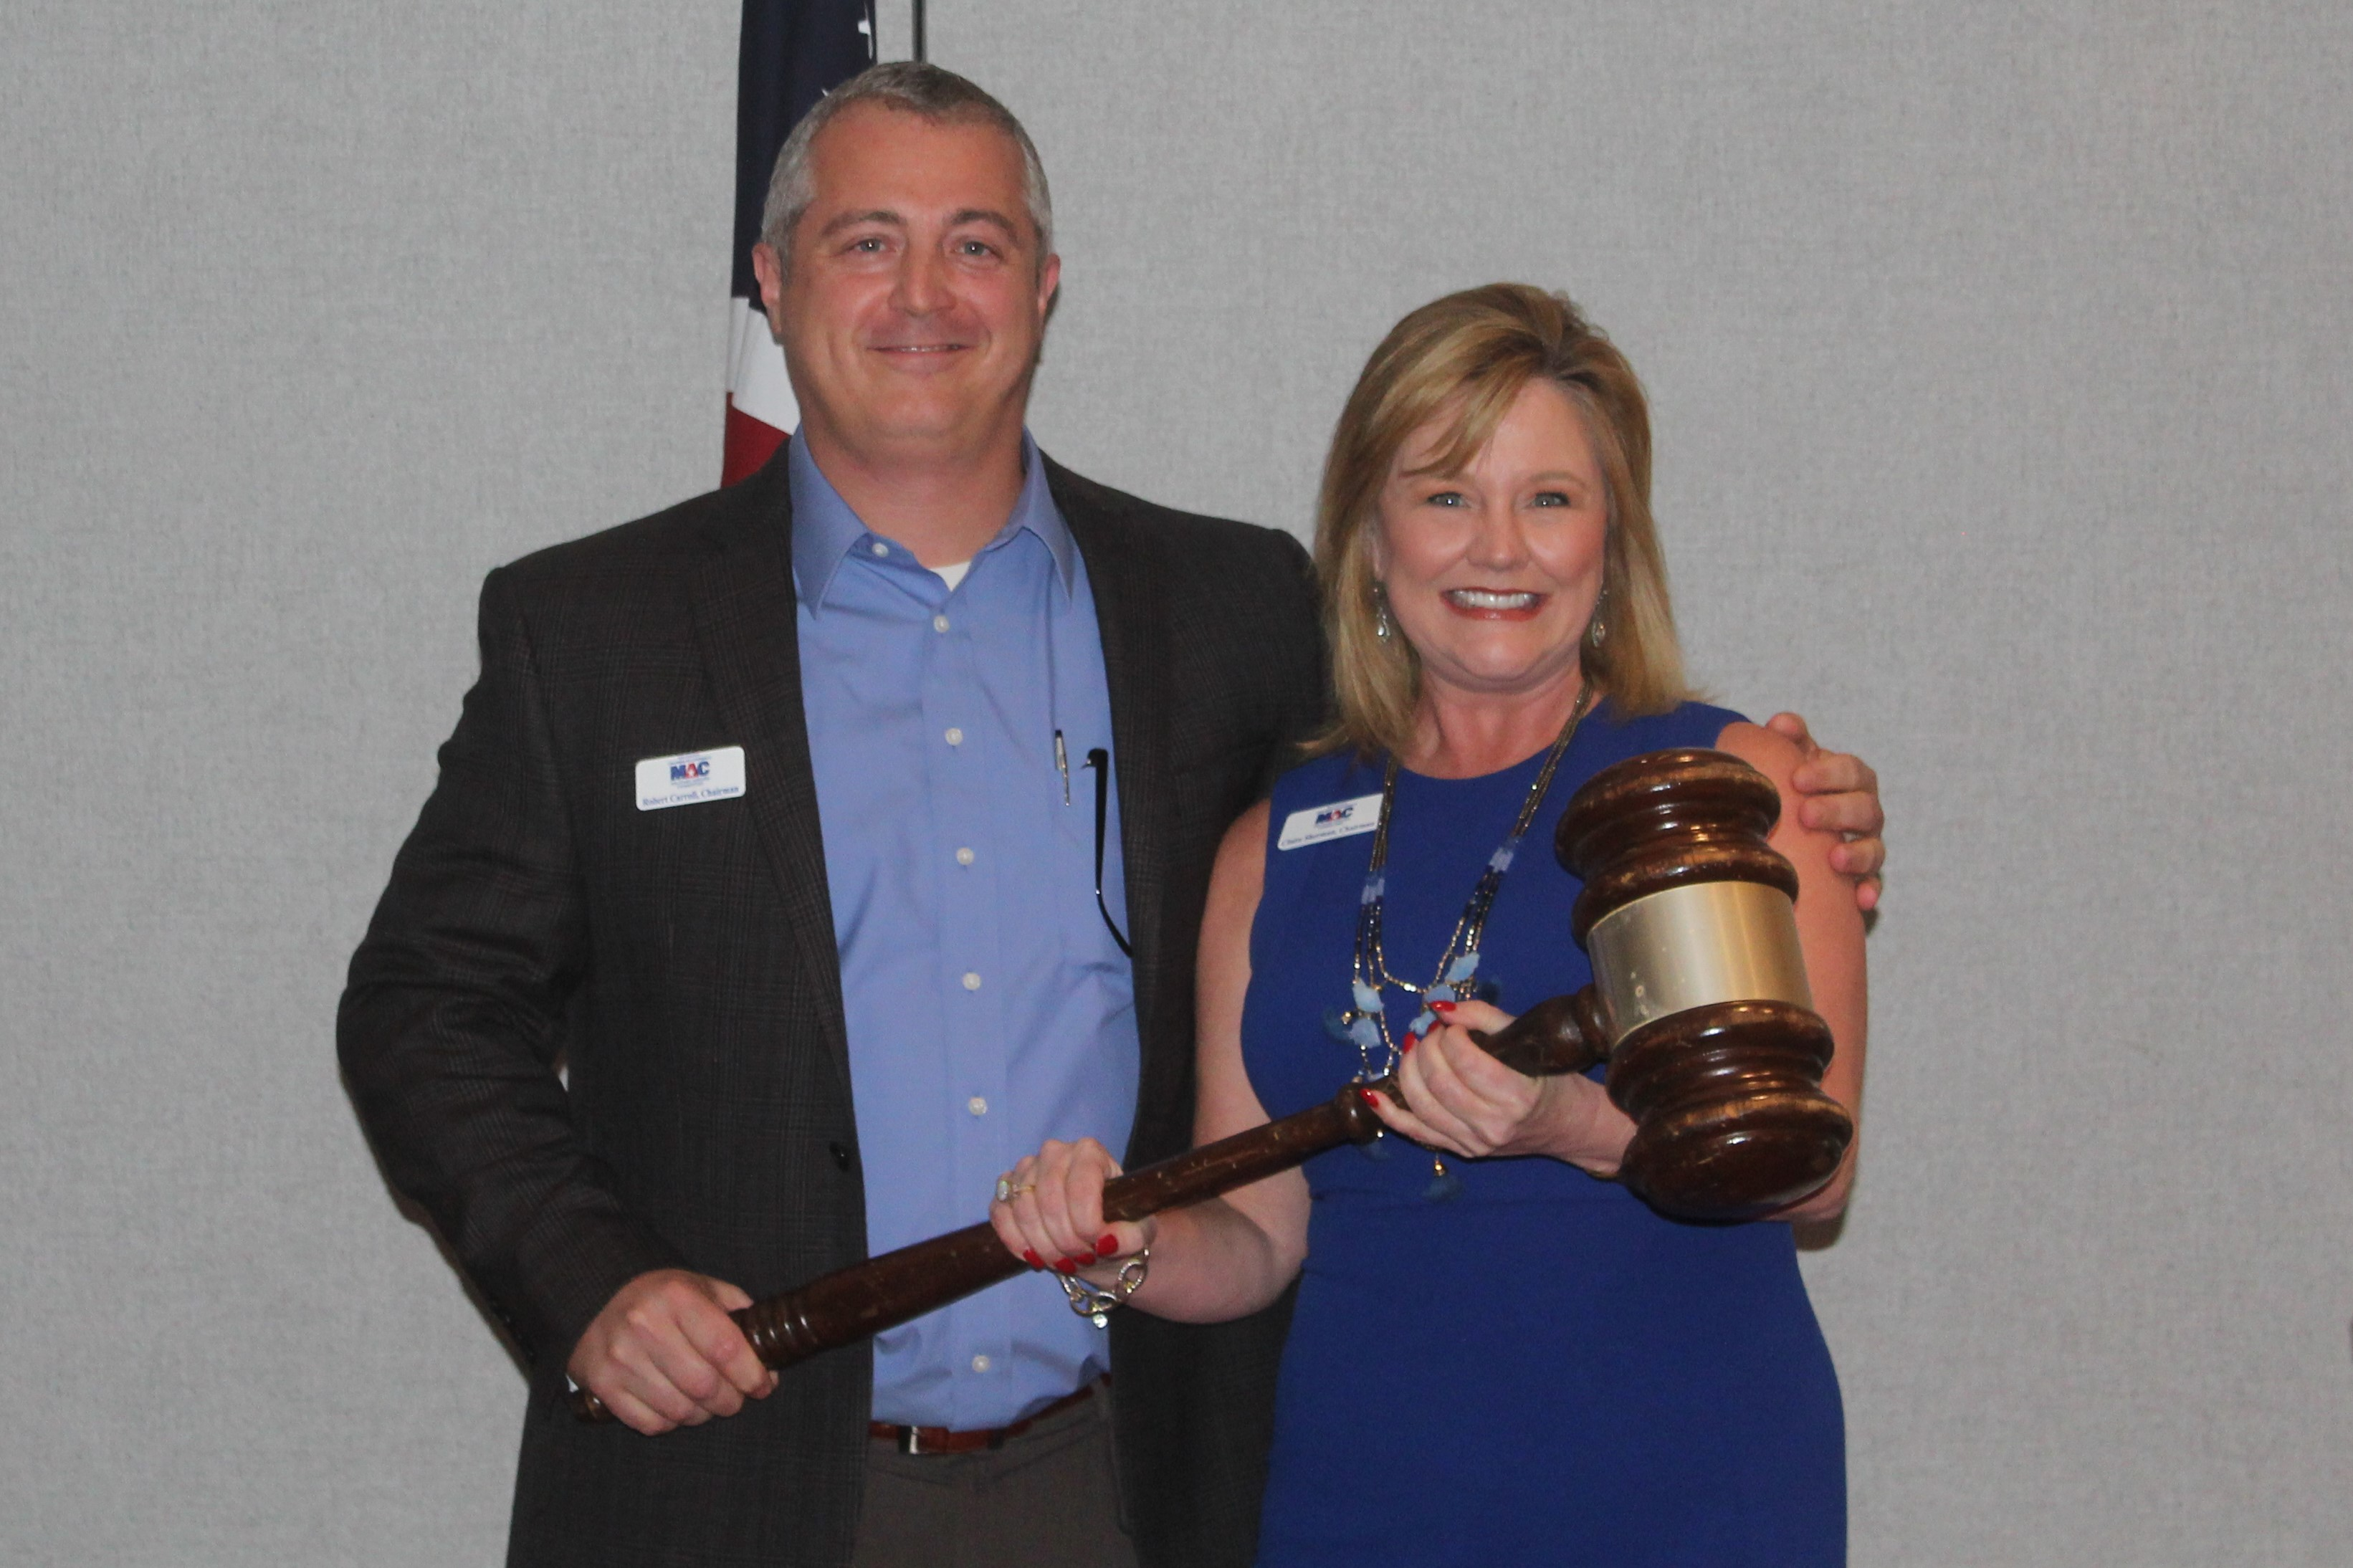 2017 MAC Chairman, Robert Carroll, passes the gavel to 2018 MAC Chairman, Claire Sherman at 2018 Passing of the Gavel event.